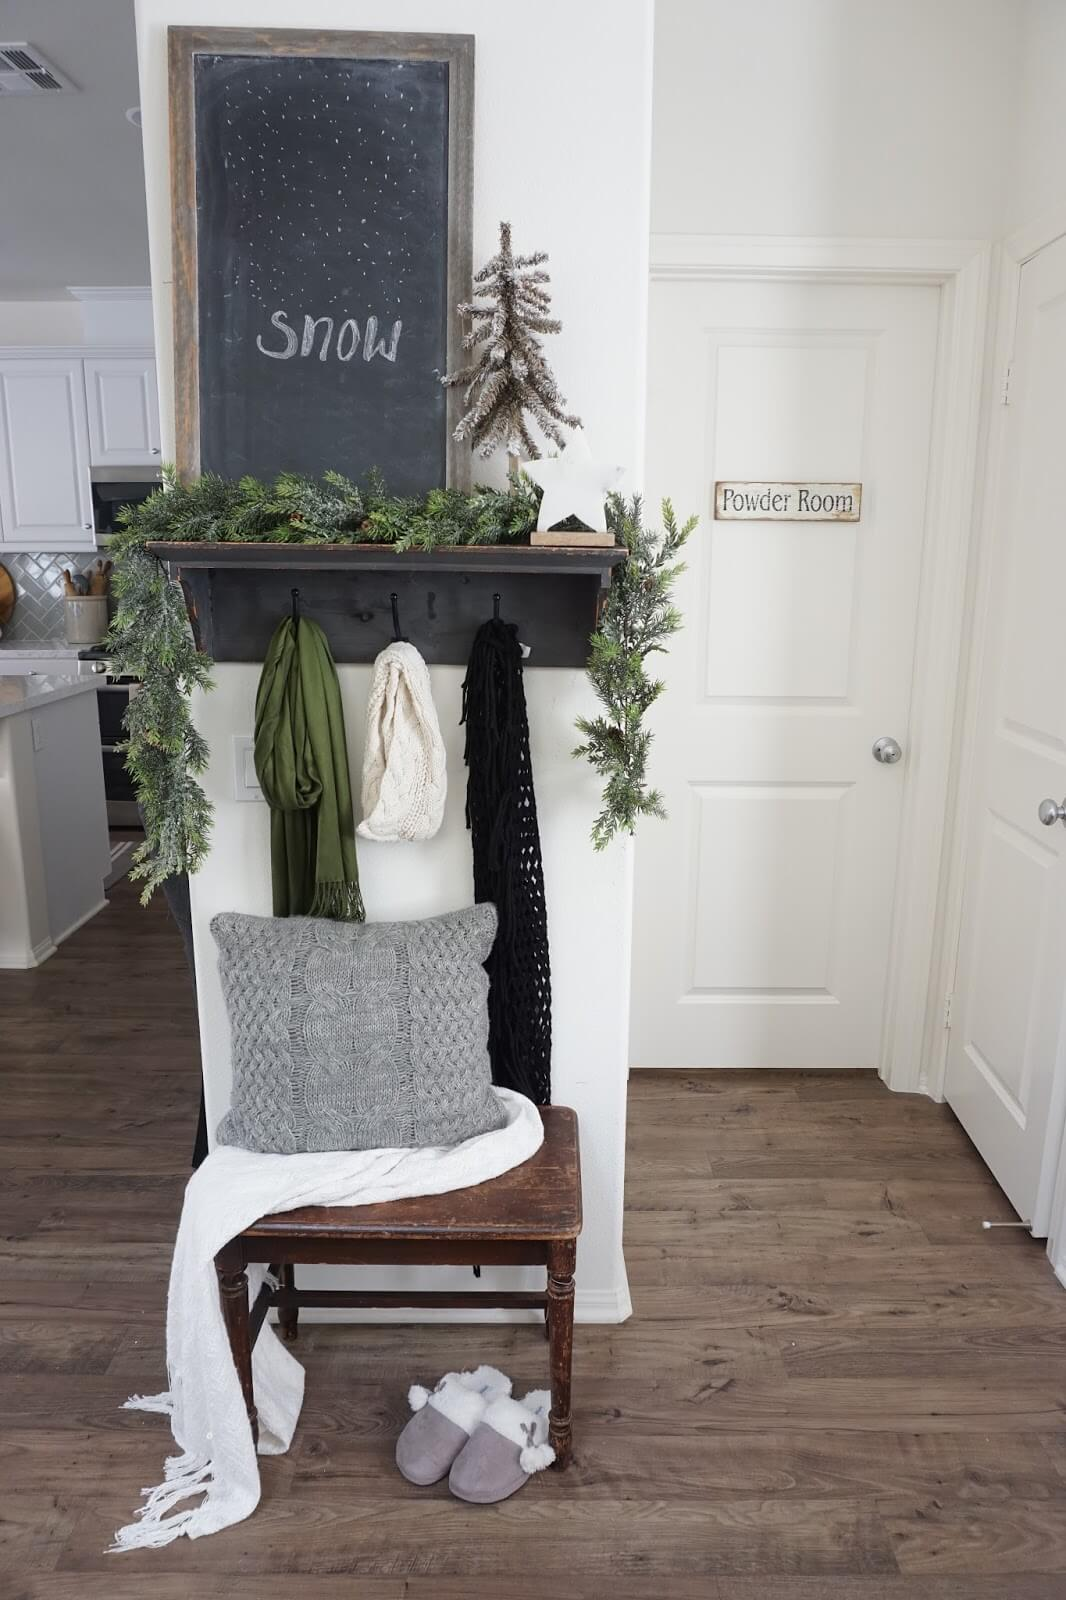 Wintery Corner with Chalkboard and Evergreen Garlands